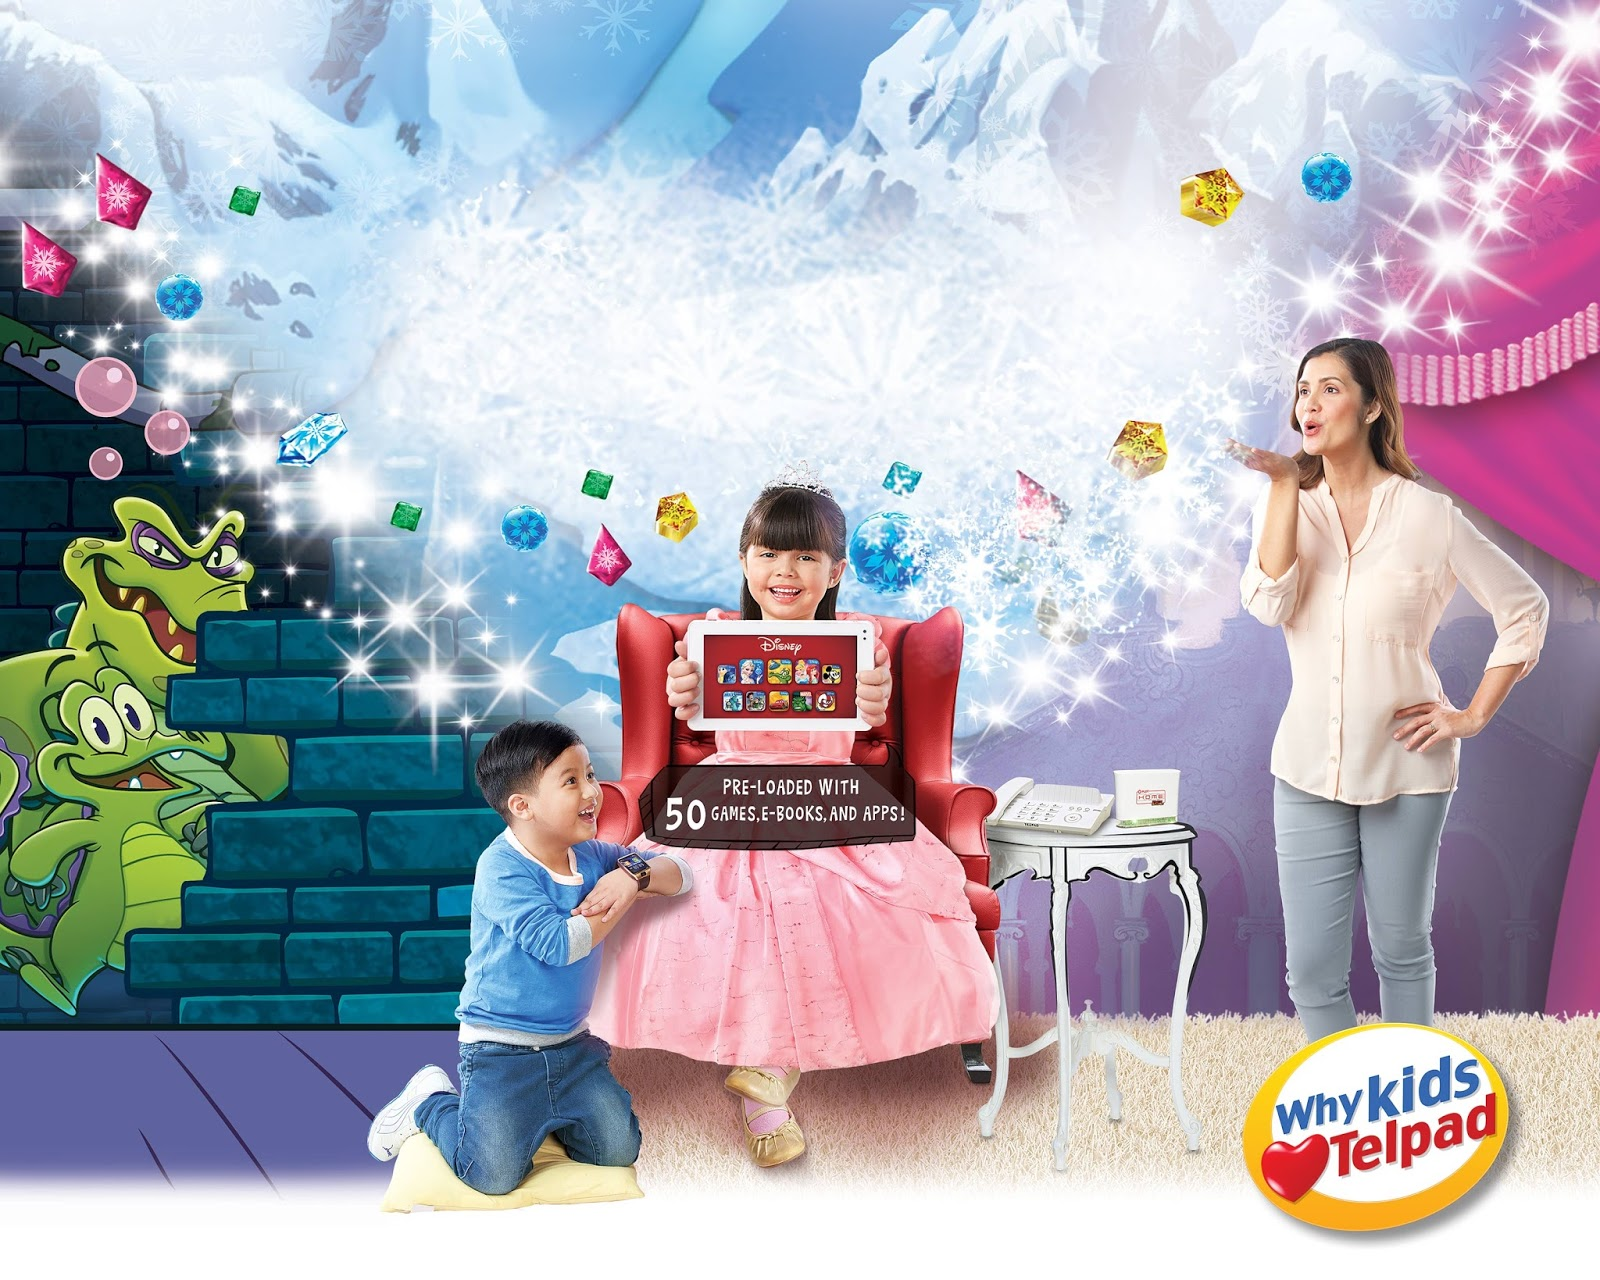 PLDT HOME Telpad with Disney